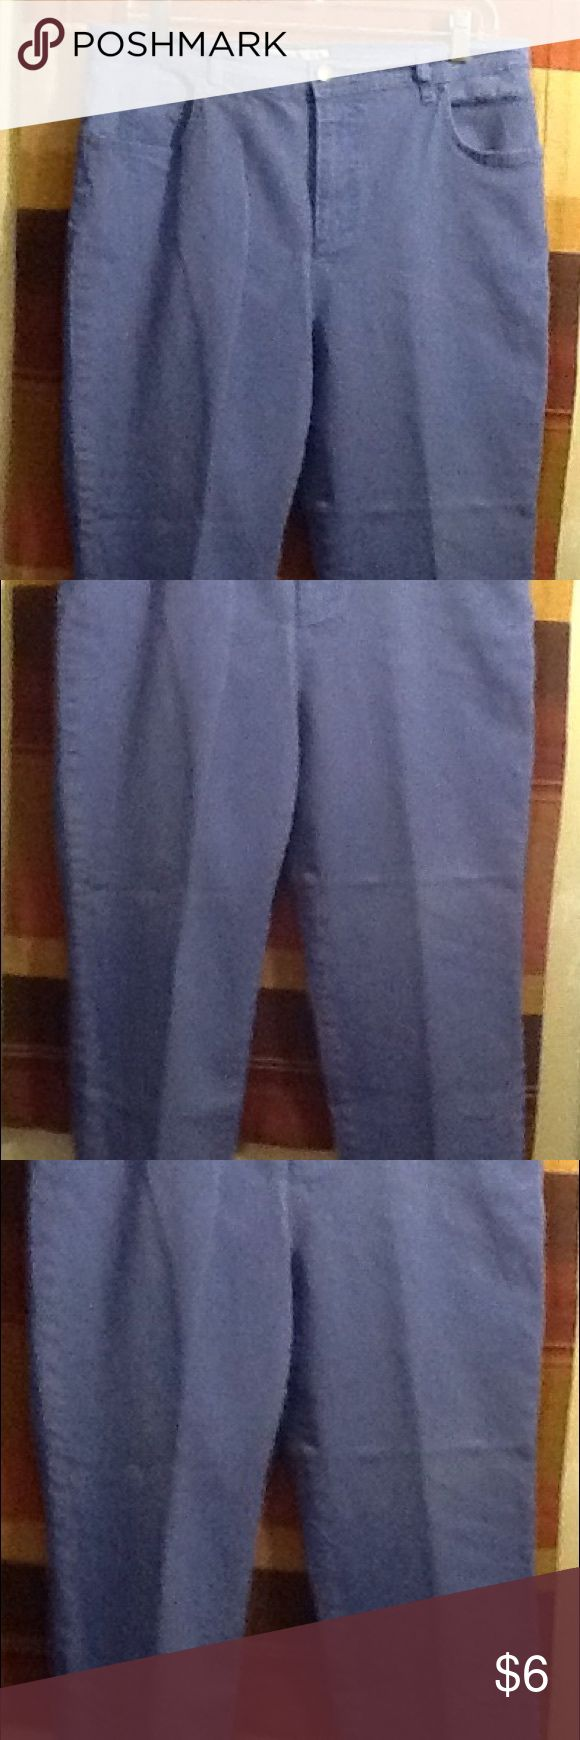 Women's Jean's These are pair of gently used , lightly faded purple Jean's..They can be worn for everyday wear.  They are 98 percent cotton and 2 percent spandex. Charter Club Jeans Ankle & Cropped